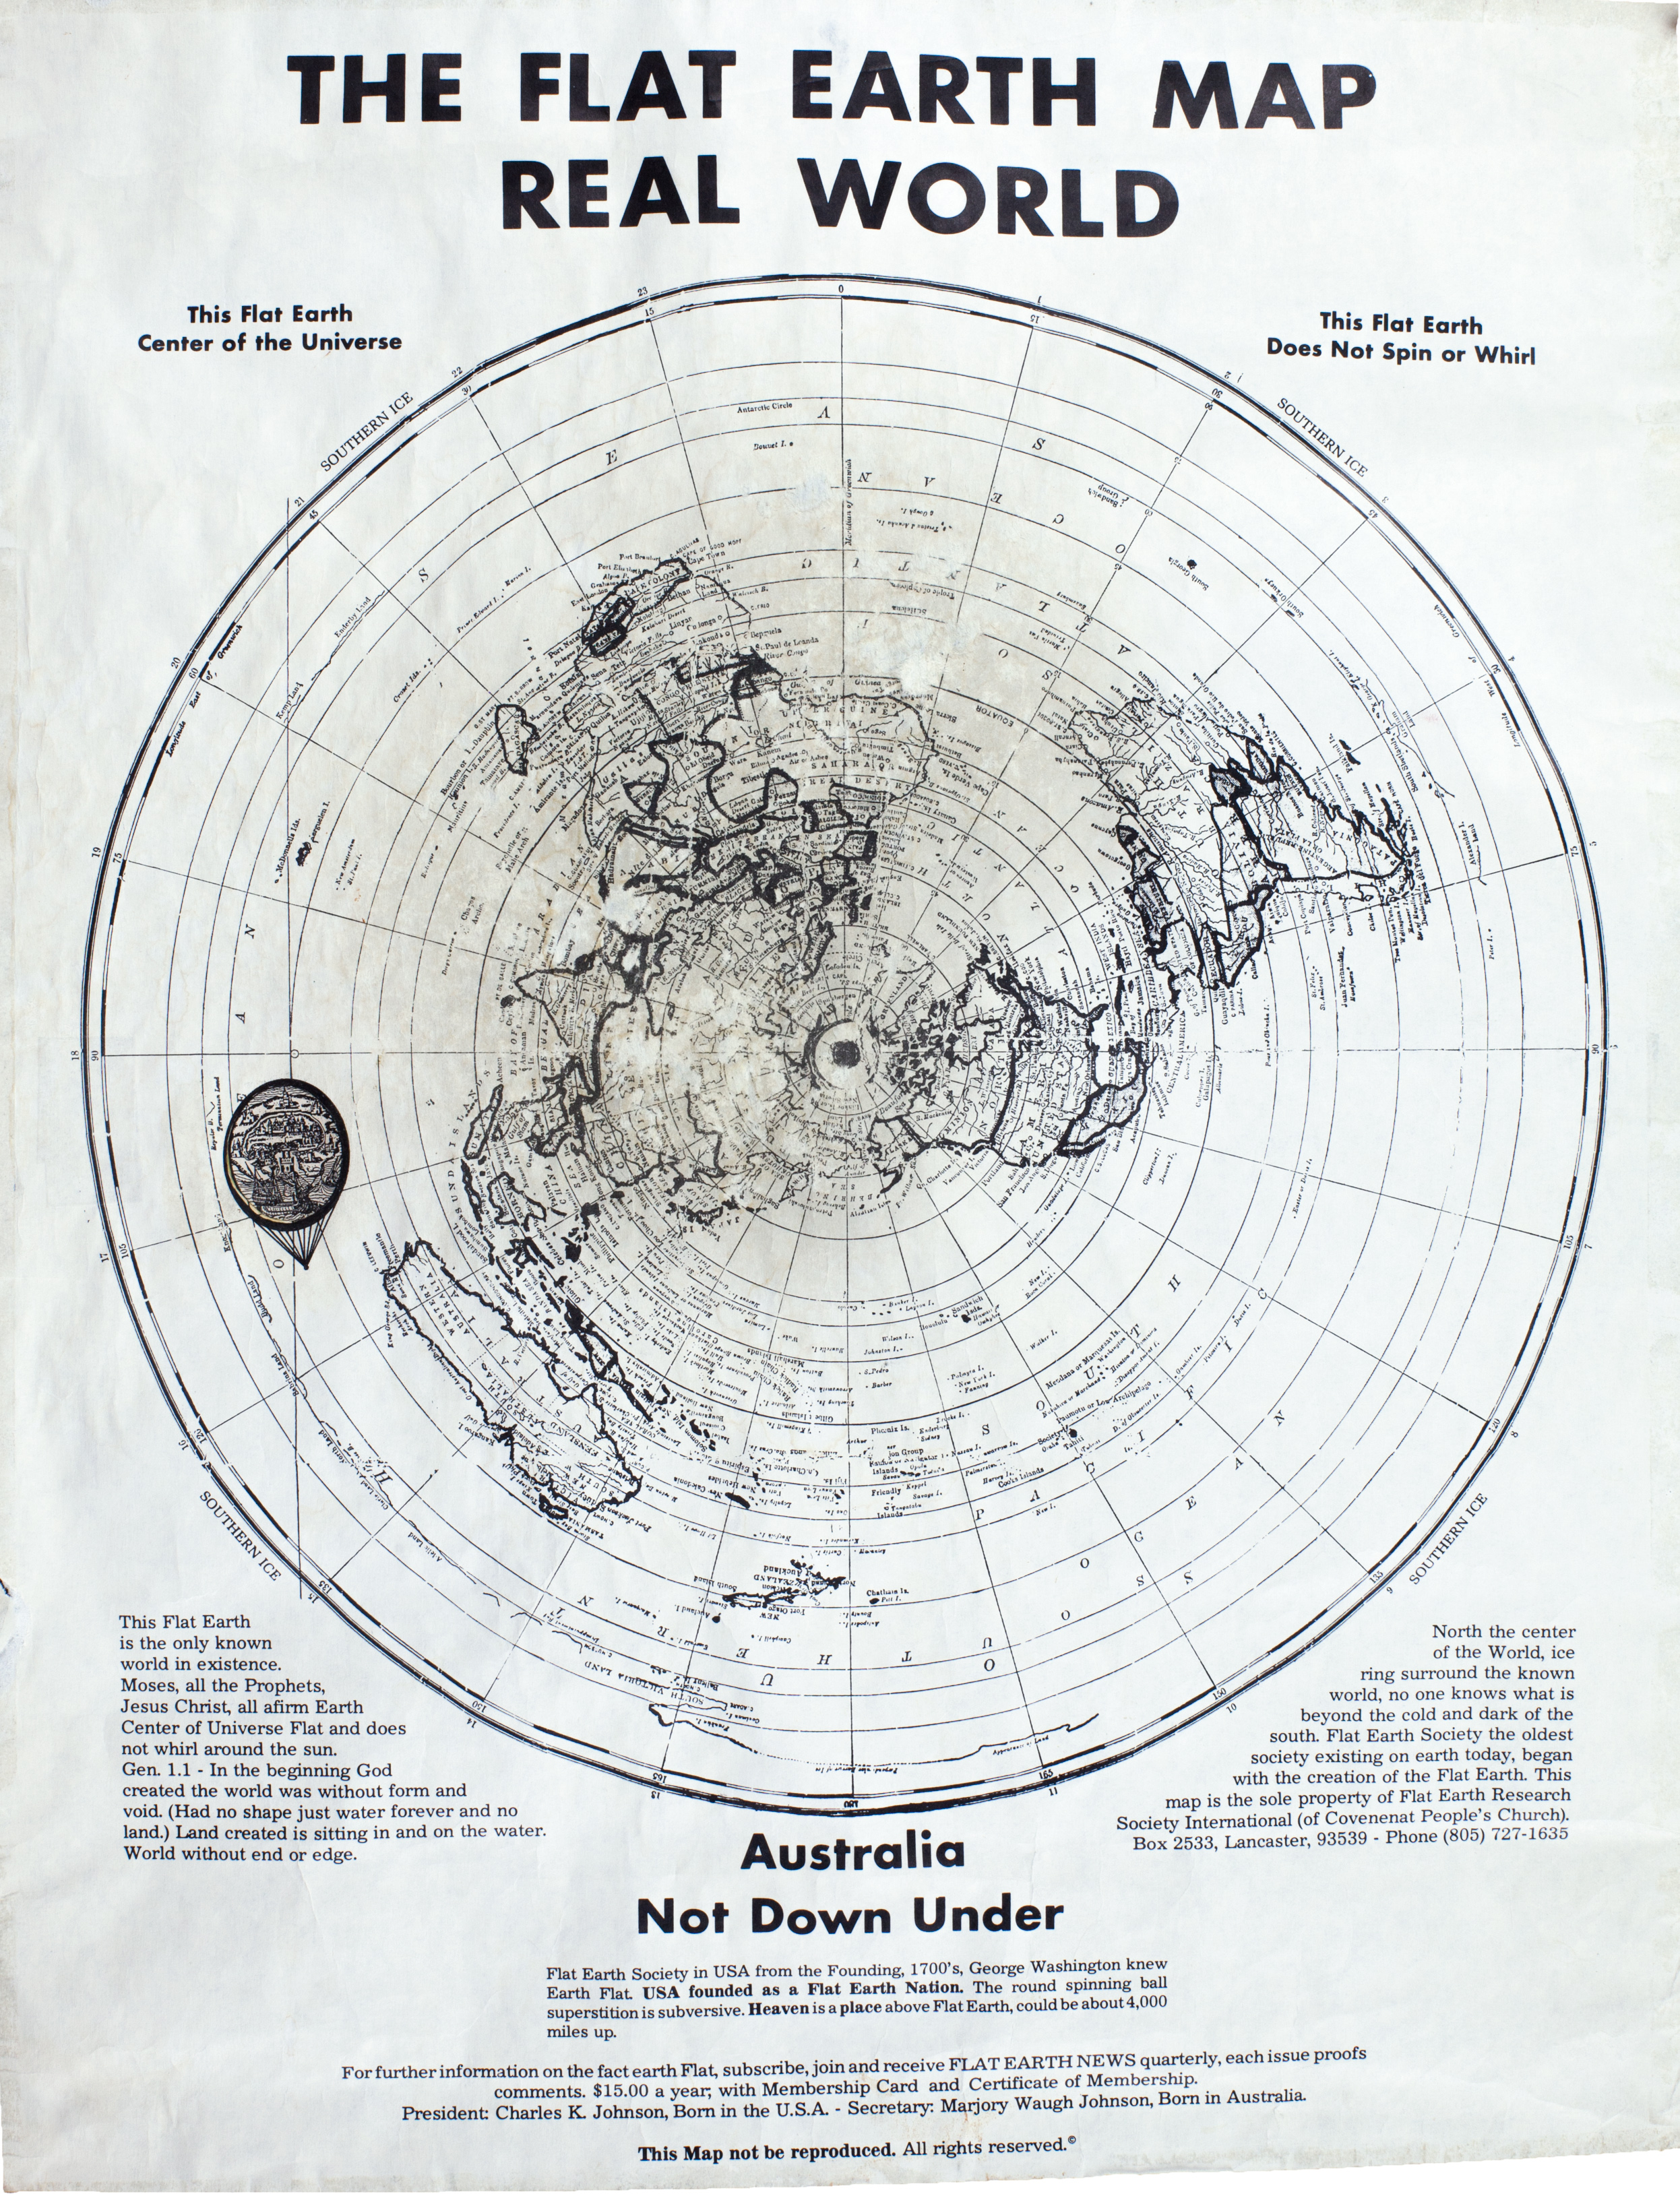 Http://www.theflatearthsociety.org/cms/images/gallery/Maps /01 Flat Earth Society Map (Charles K. Johnson)